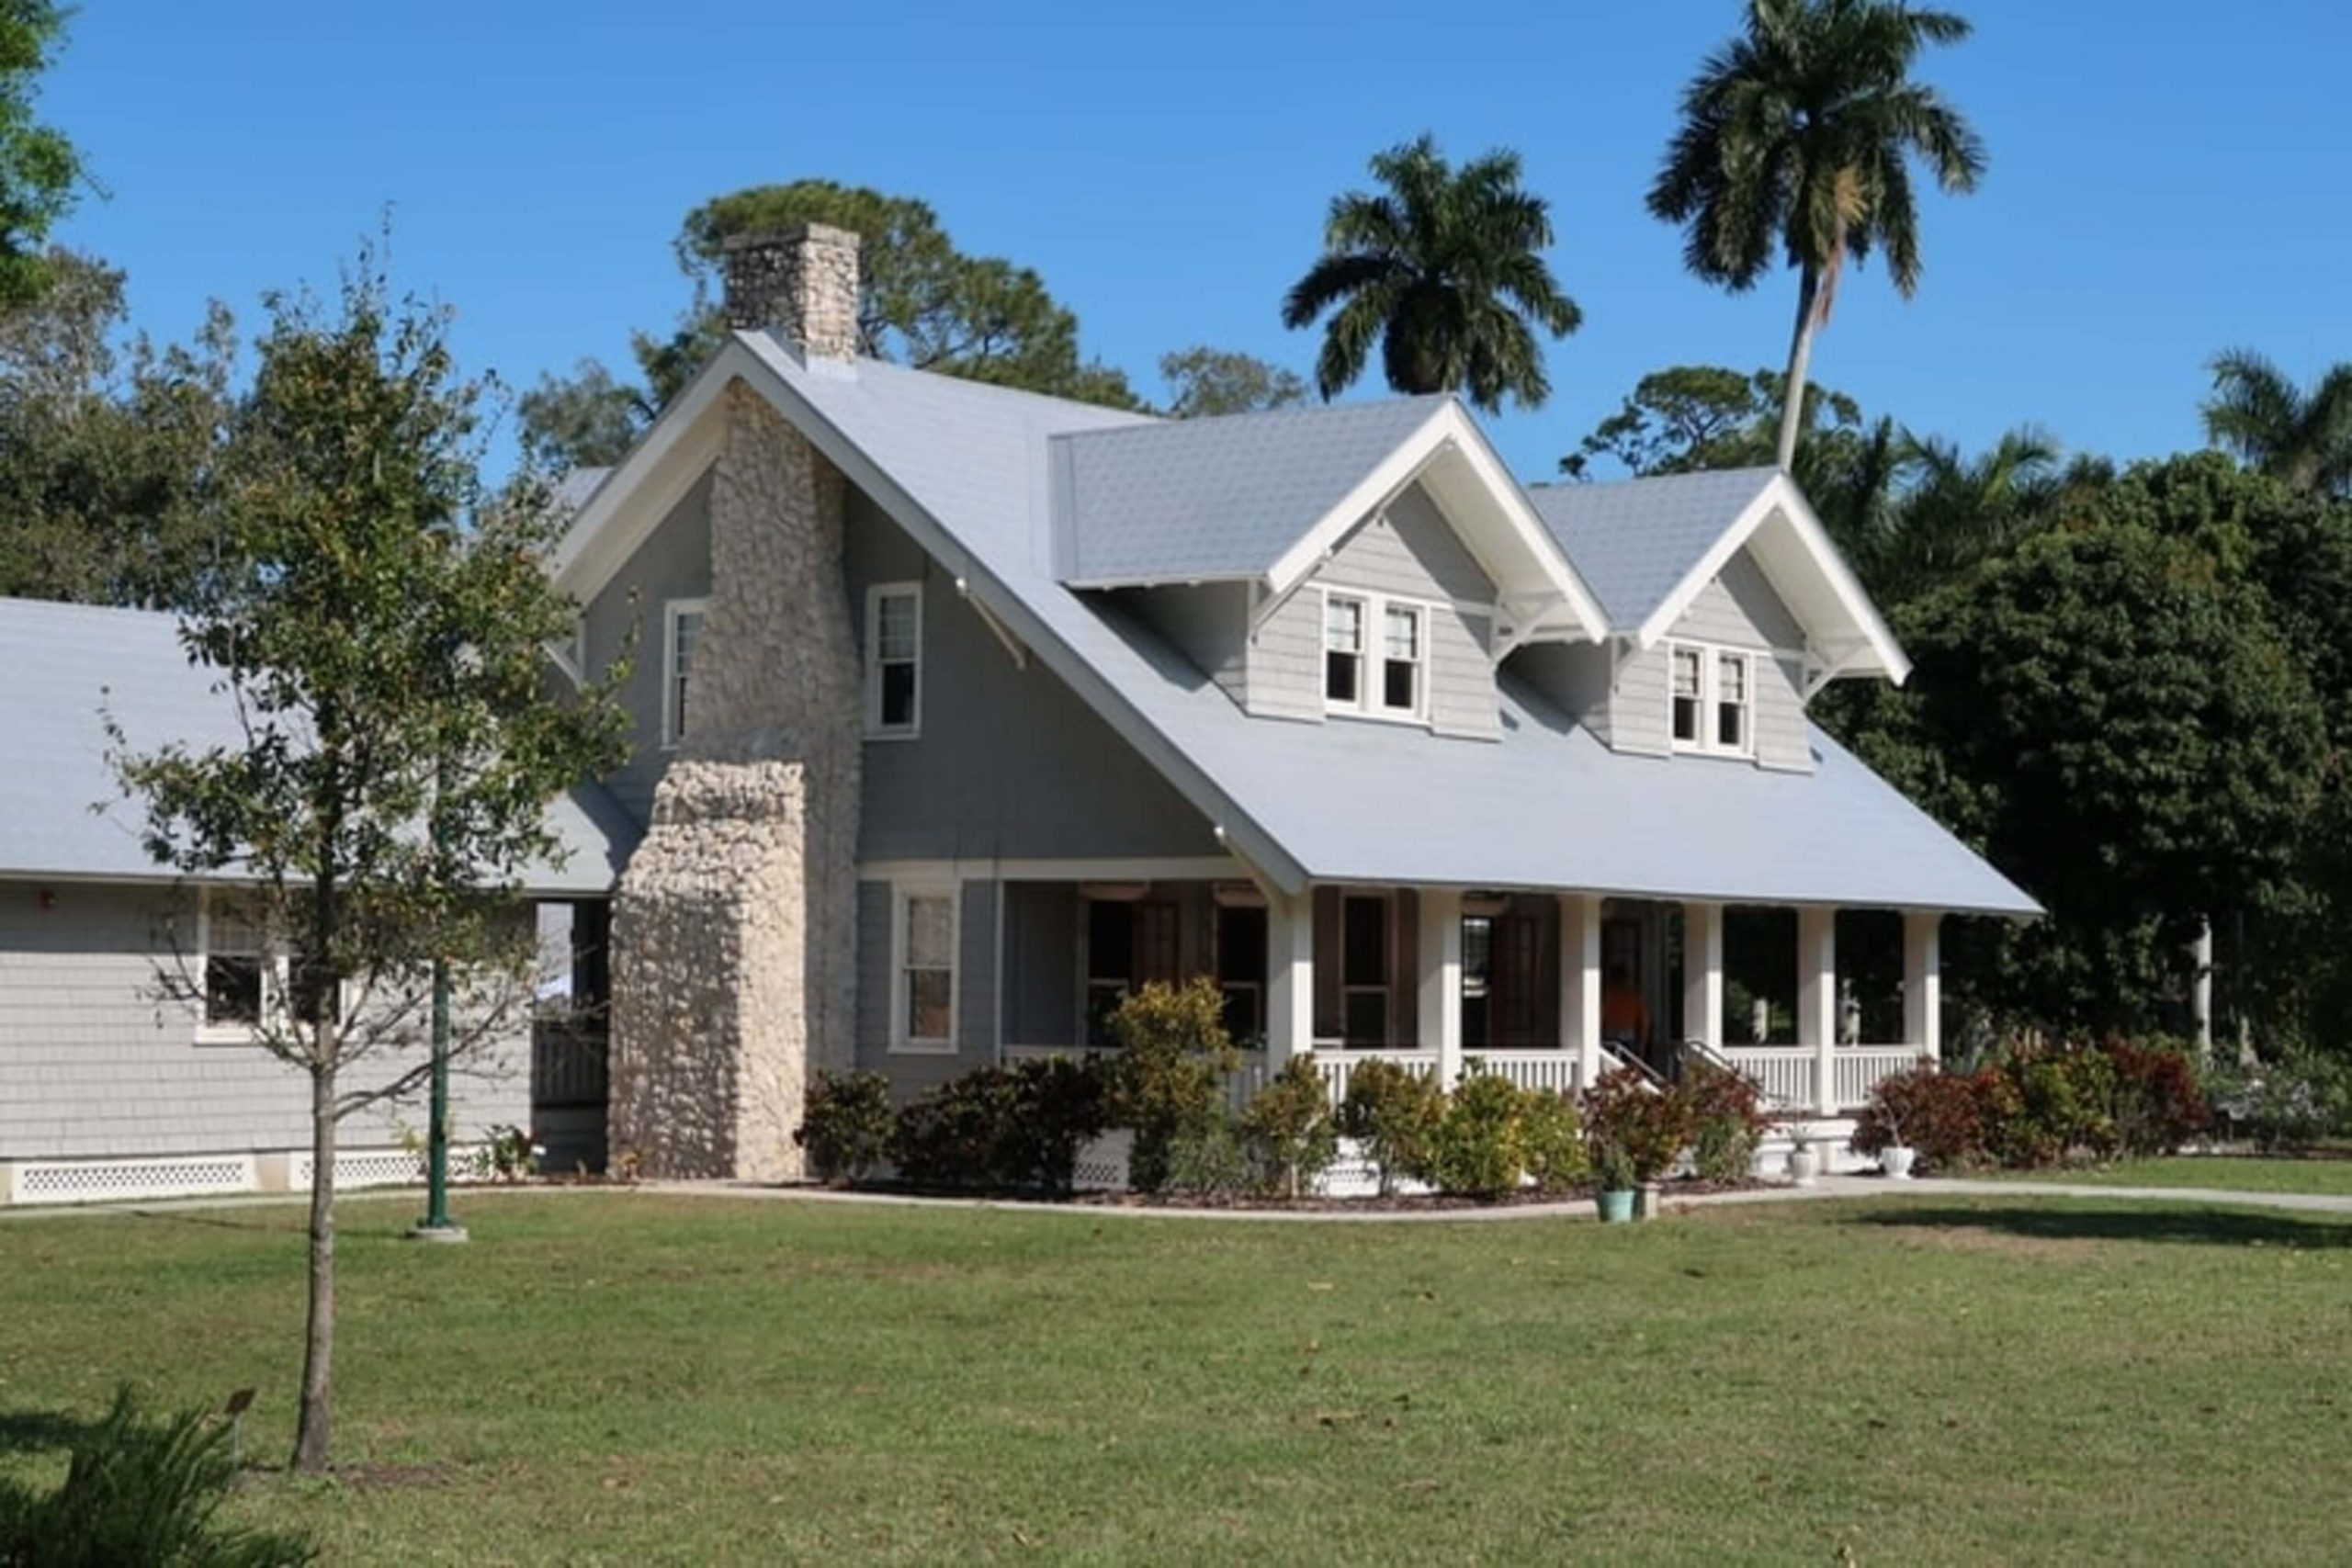 5 Trendy Home Building Styles